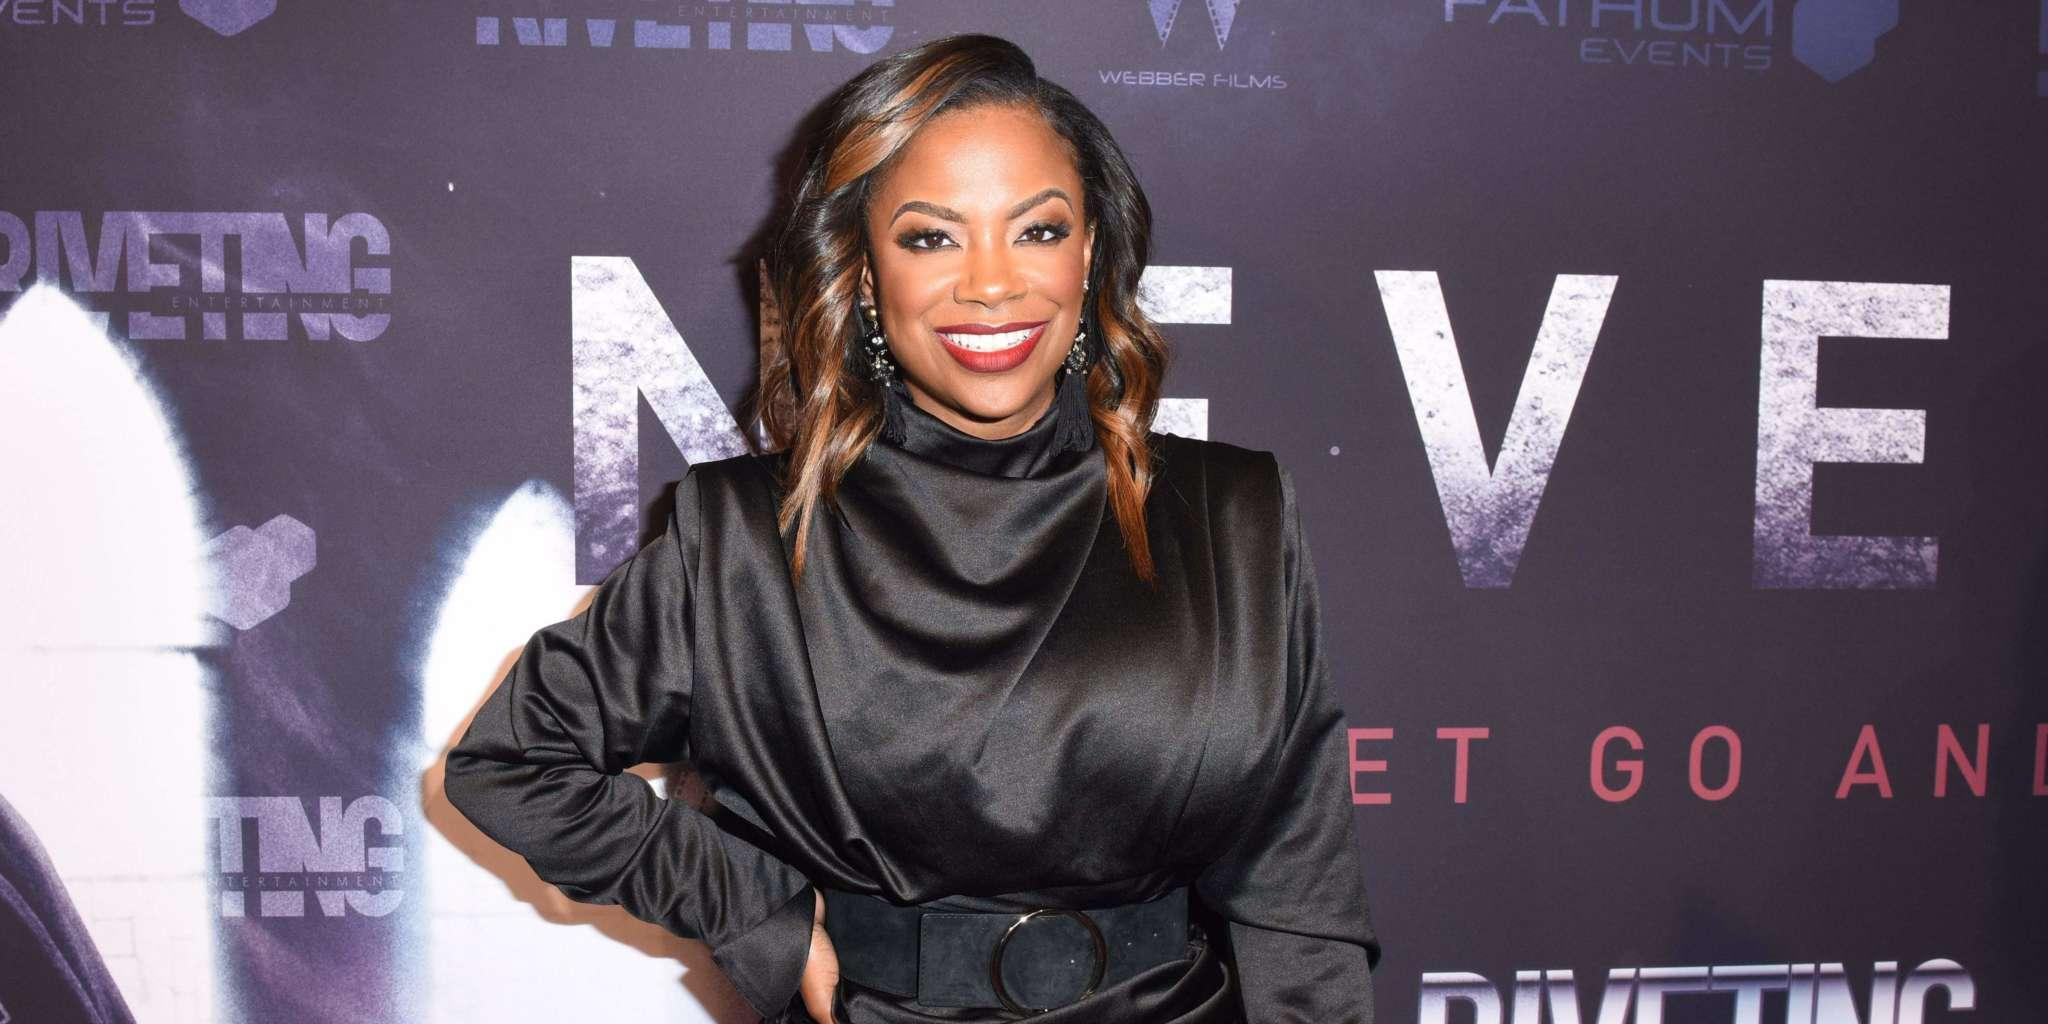 Kandi Burruss Shares A Throwback Photo Featuring The Old Lady Gang When The Ladies Were Younger